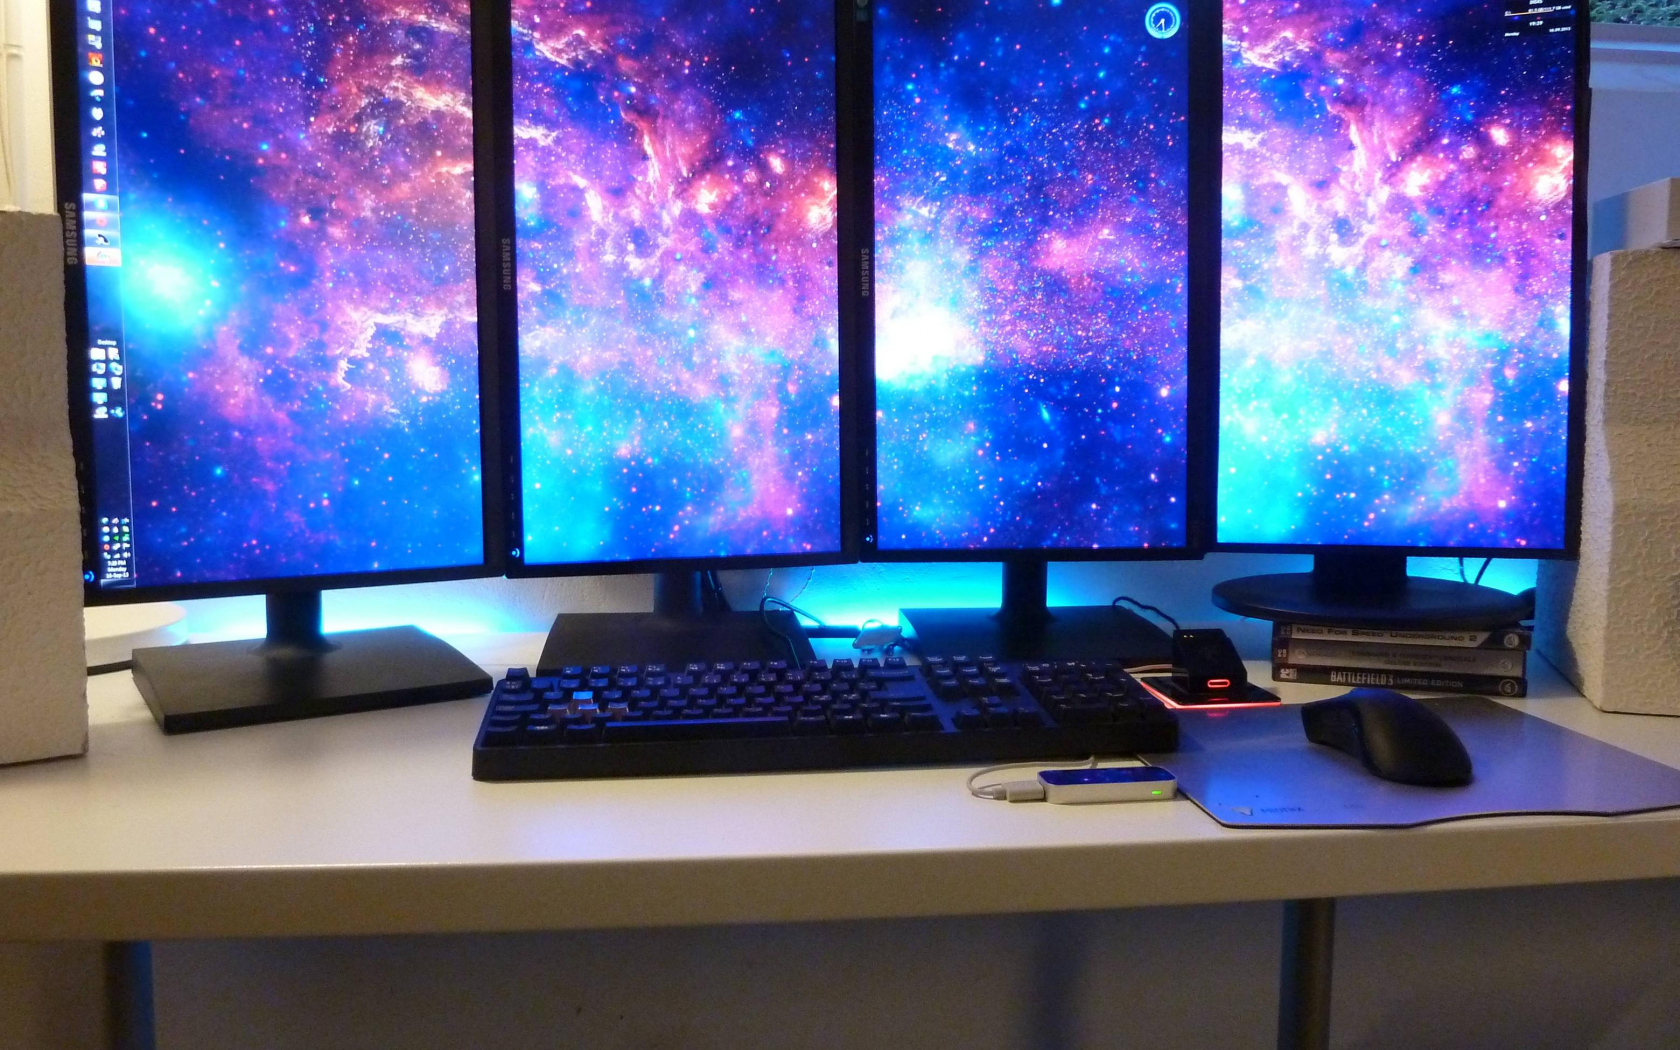 Free Download Cool Computer Monitor Computer Setup 3120x2340 For Your Desktop Mobile Tablet Explore 45 Cool Wallpapers For Computer Screen Free Spring Desktop Wallpaper Free Awesome Desktop Wallpaper Spring